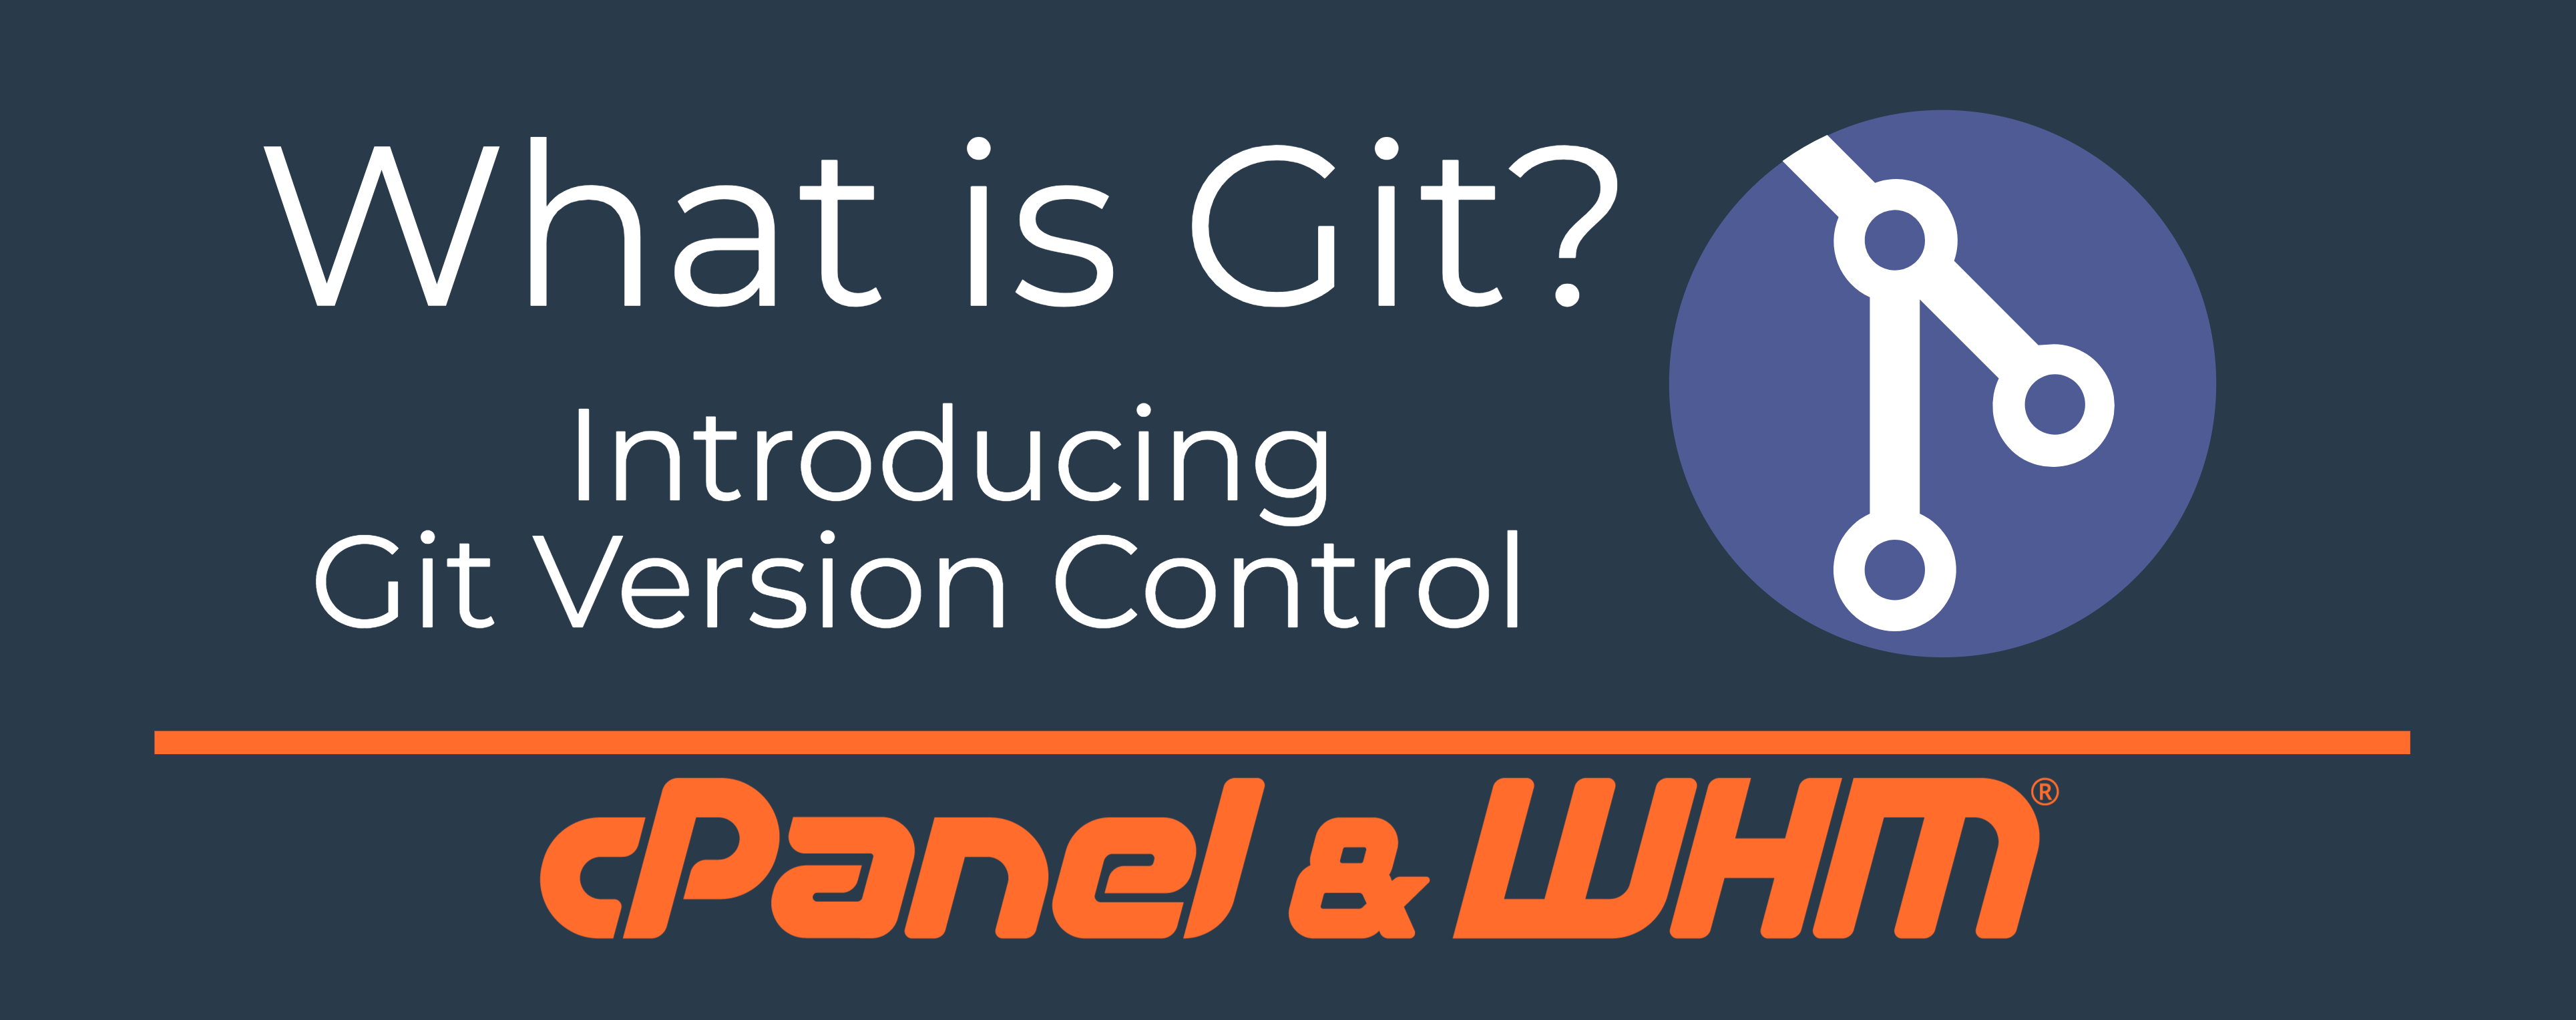 Git Version Control Series What Is Git Cpanel Blog